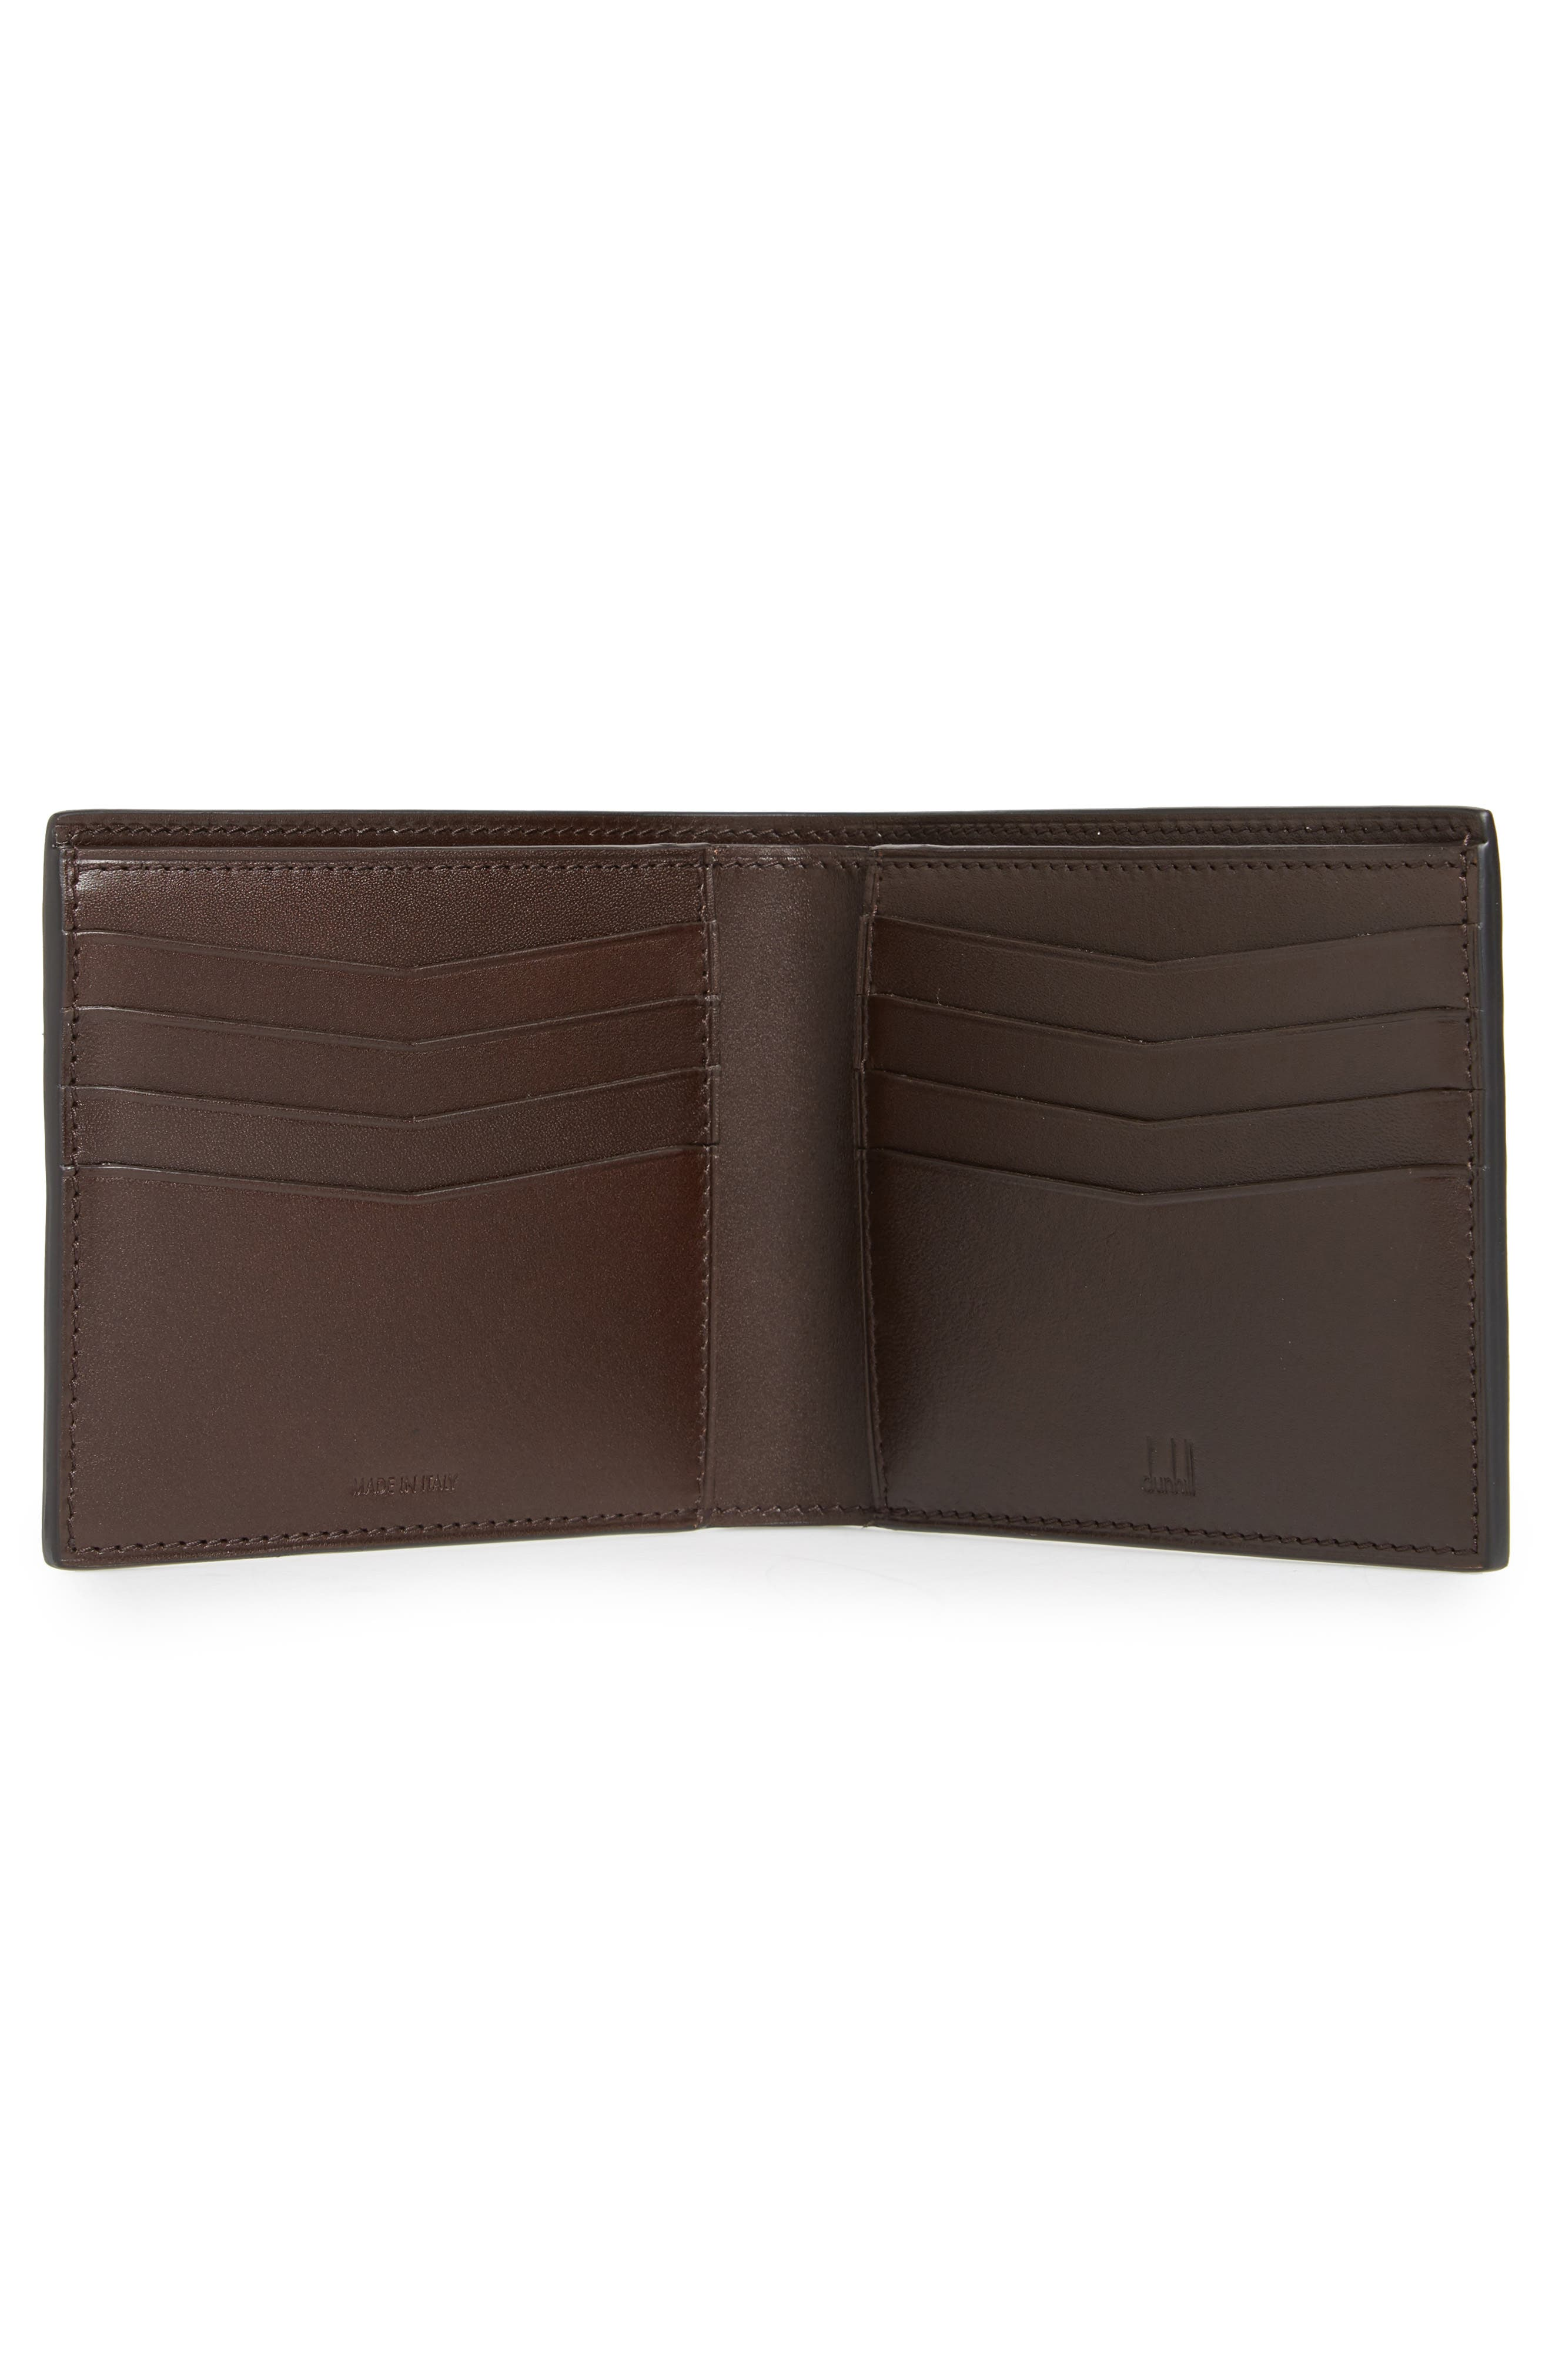 Chassis Leather Wallet,                             Alternate thumbnail 2, color,                             001